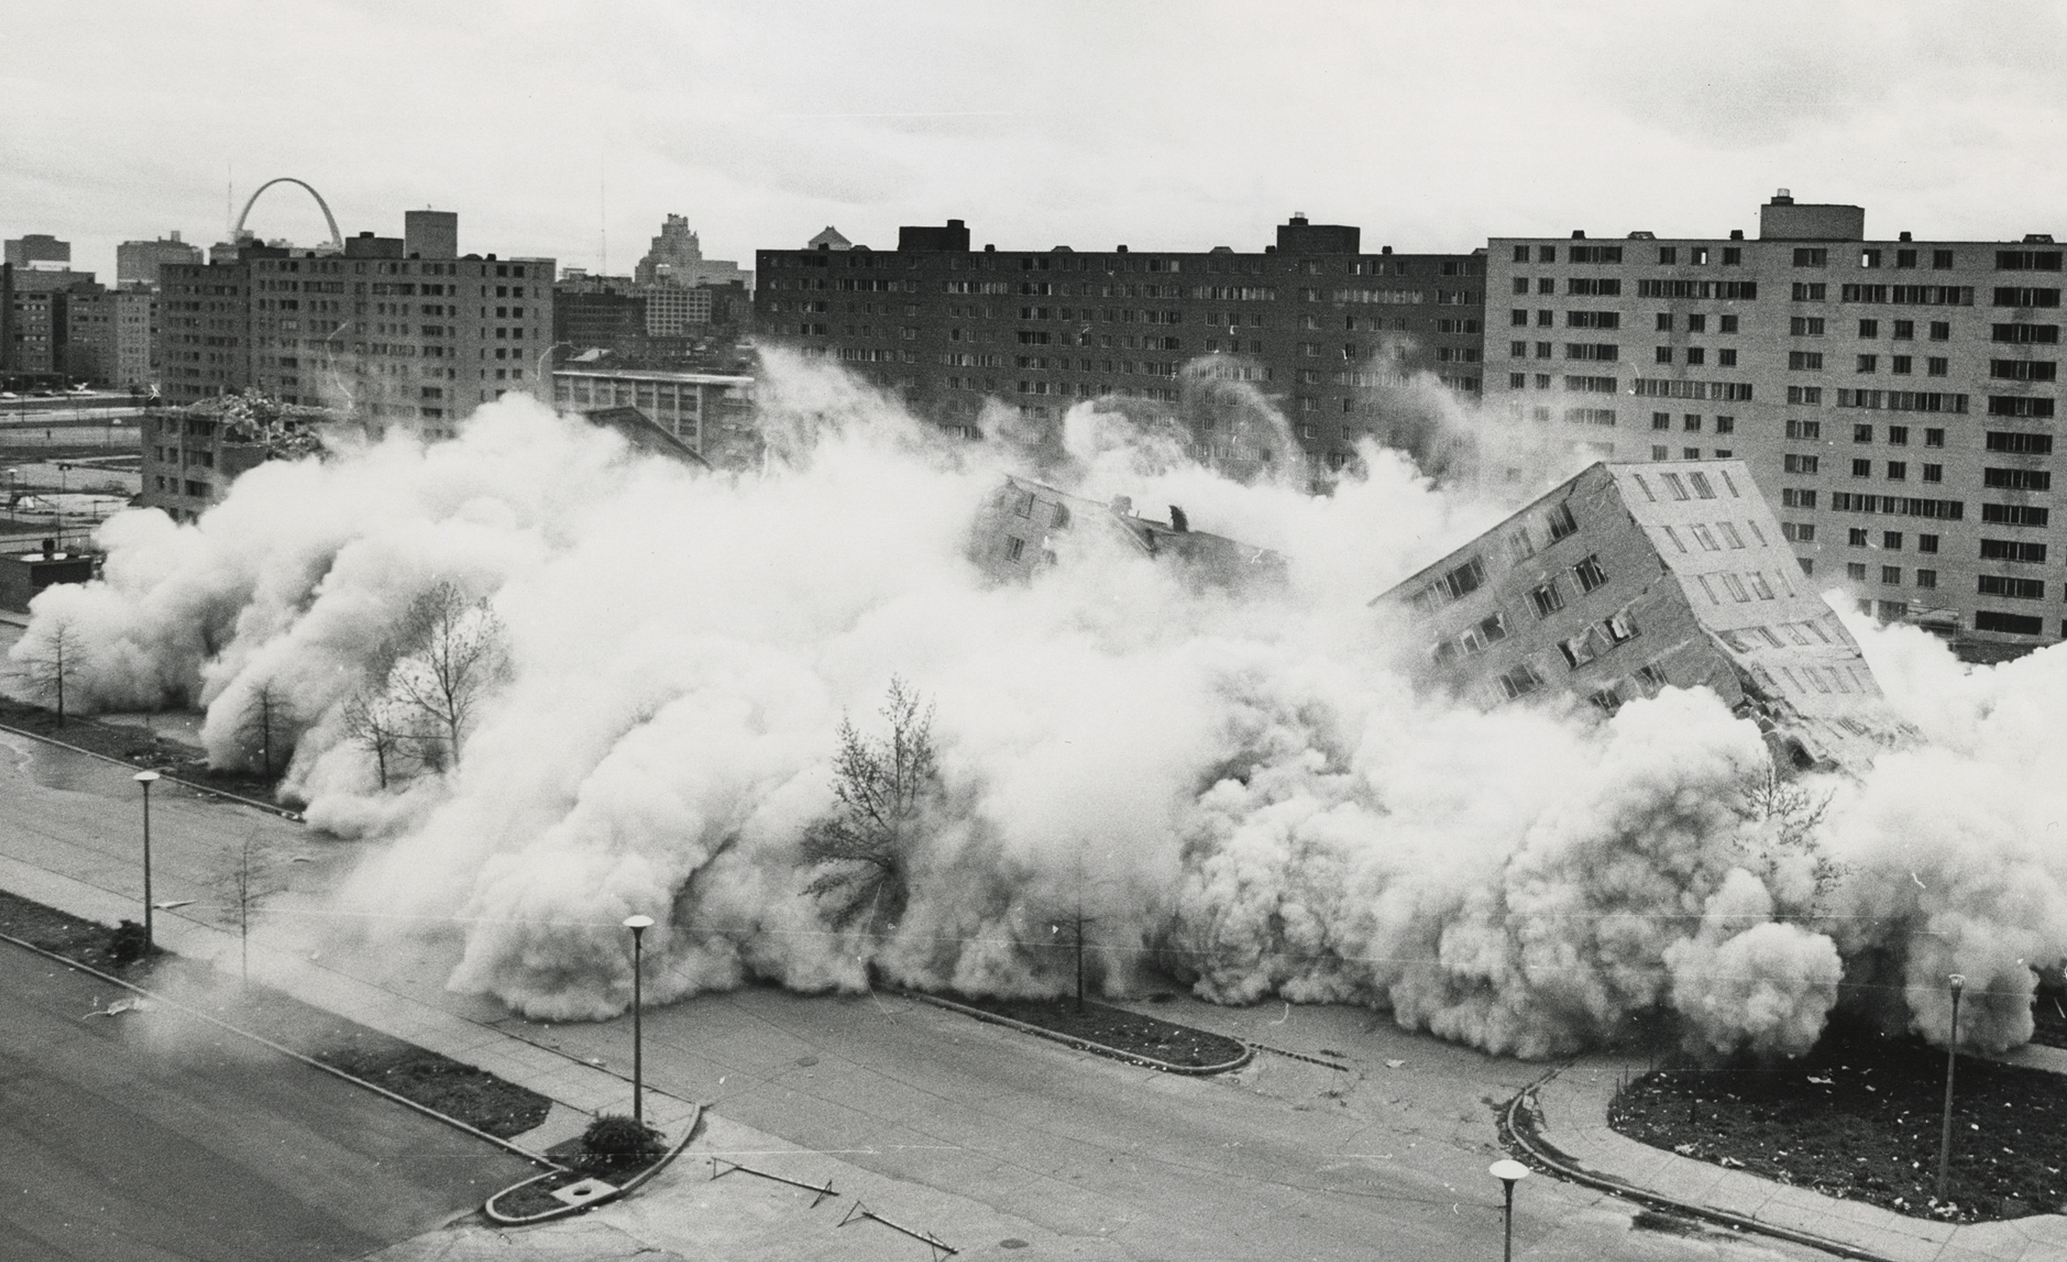 April 1972. The second, widely televised demolition of a Pruitt-Igoe building that followed the March 16 demolition.